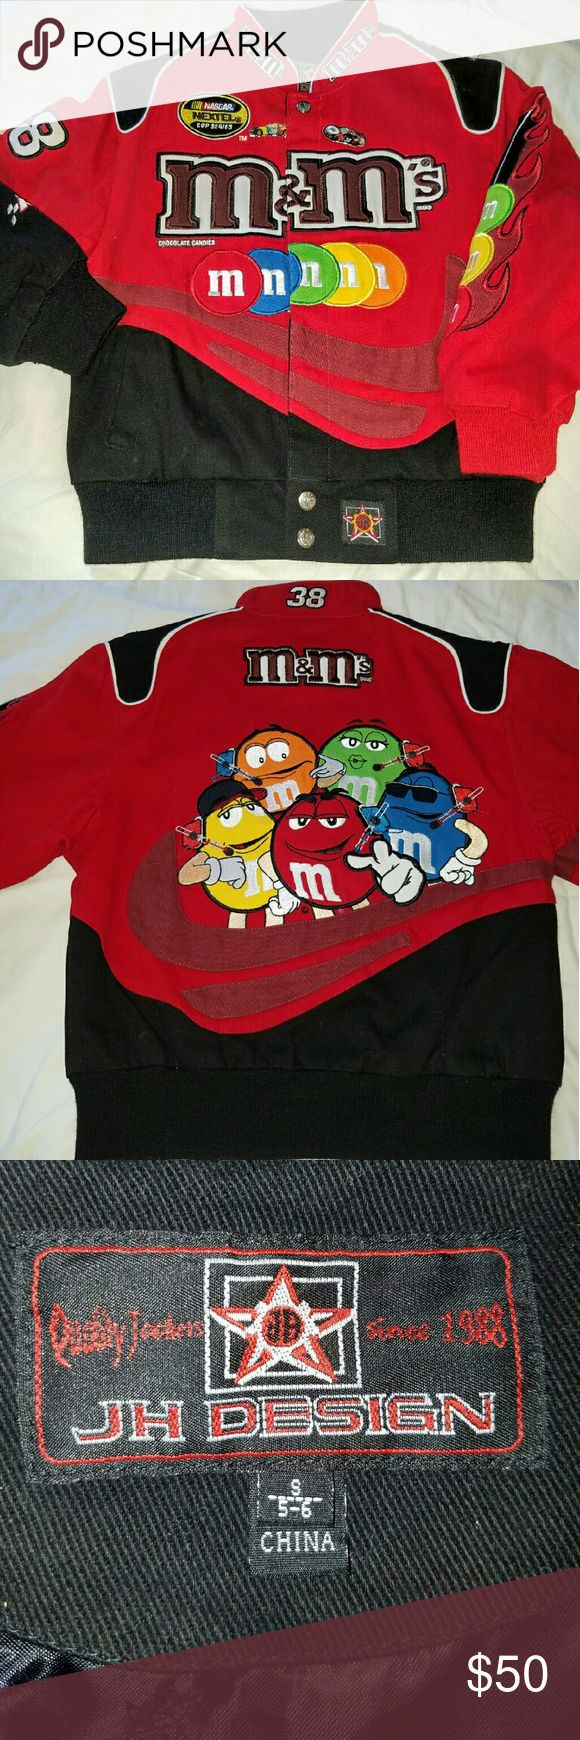 Kids NASCAR Jacket #38 M & M's jacket. Beautiful bright red corduroy. Like new! 2007 edition. JH design. Fully lined. Two driver's pins included. No trades/ No holds. JH  Design  Jackets & Coats